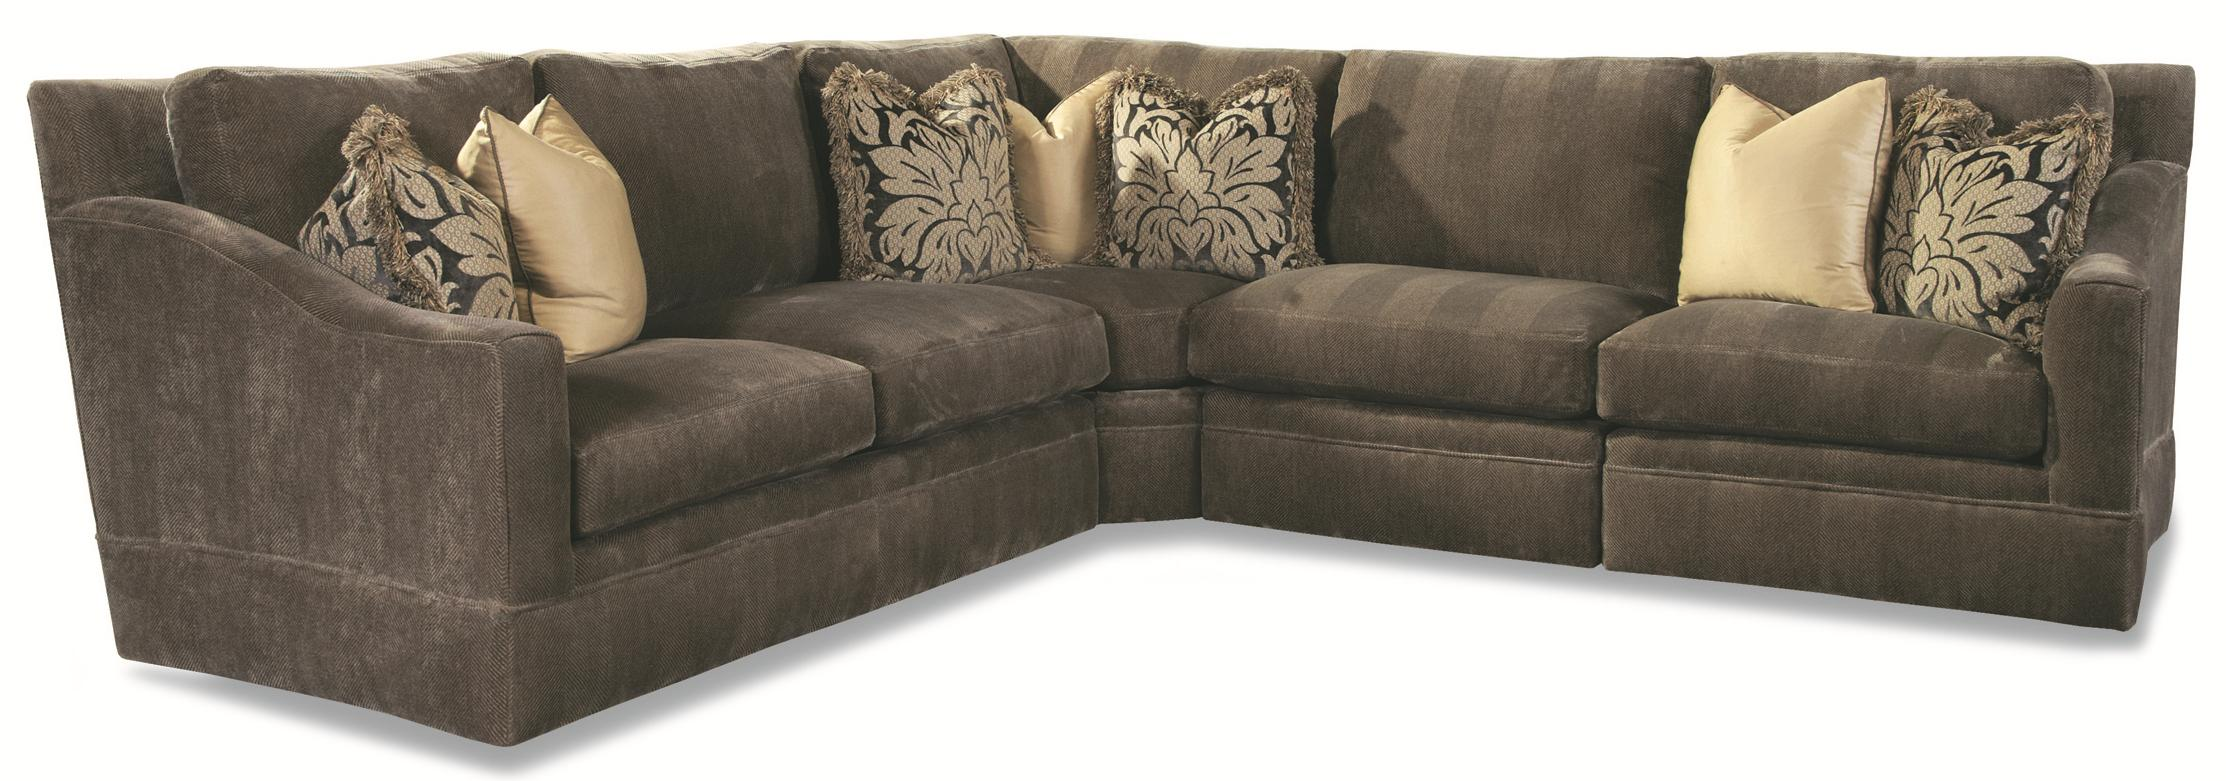 7204 Sectional by Huntington House at Belfort Furniture